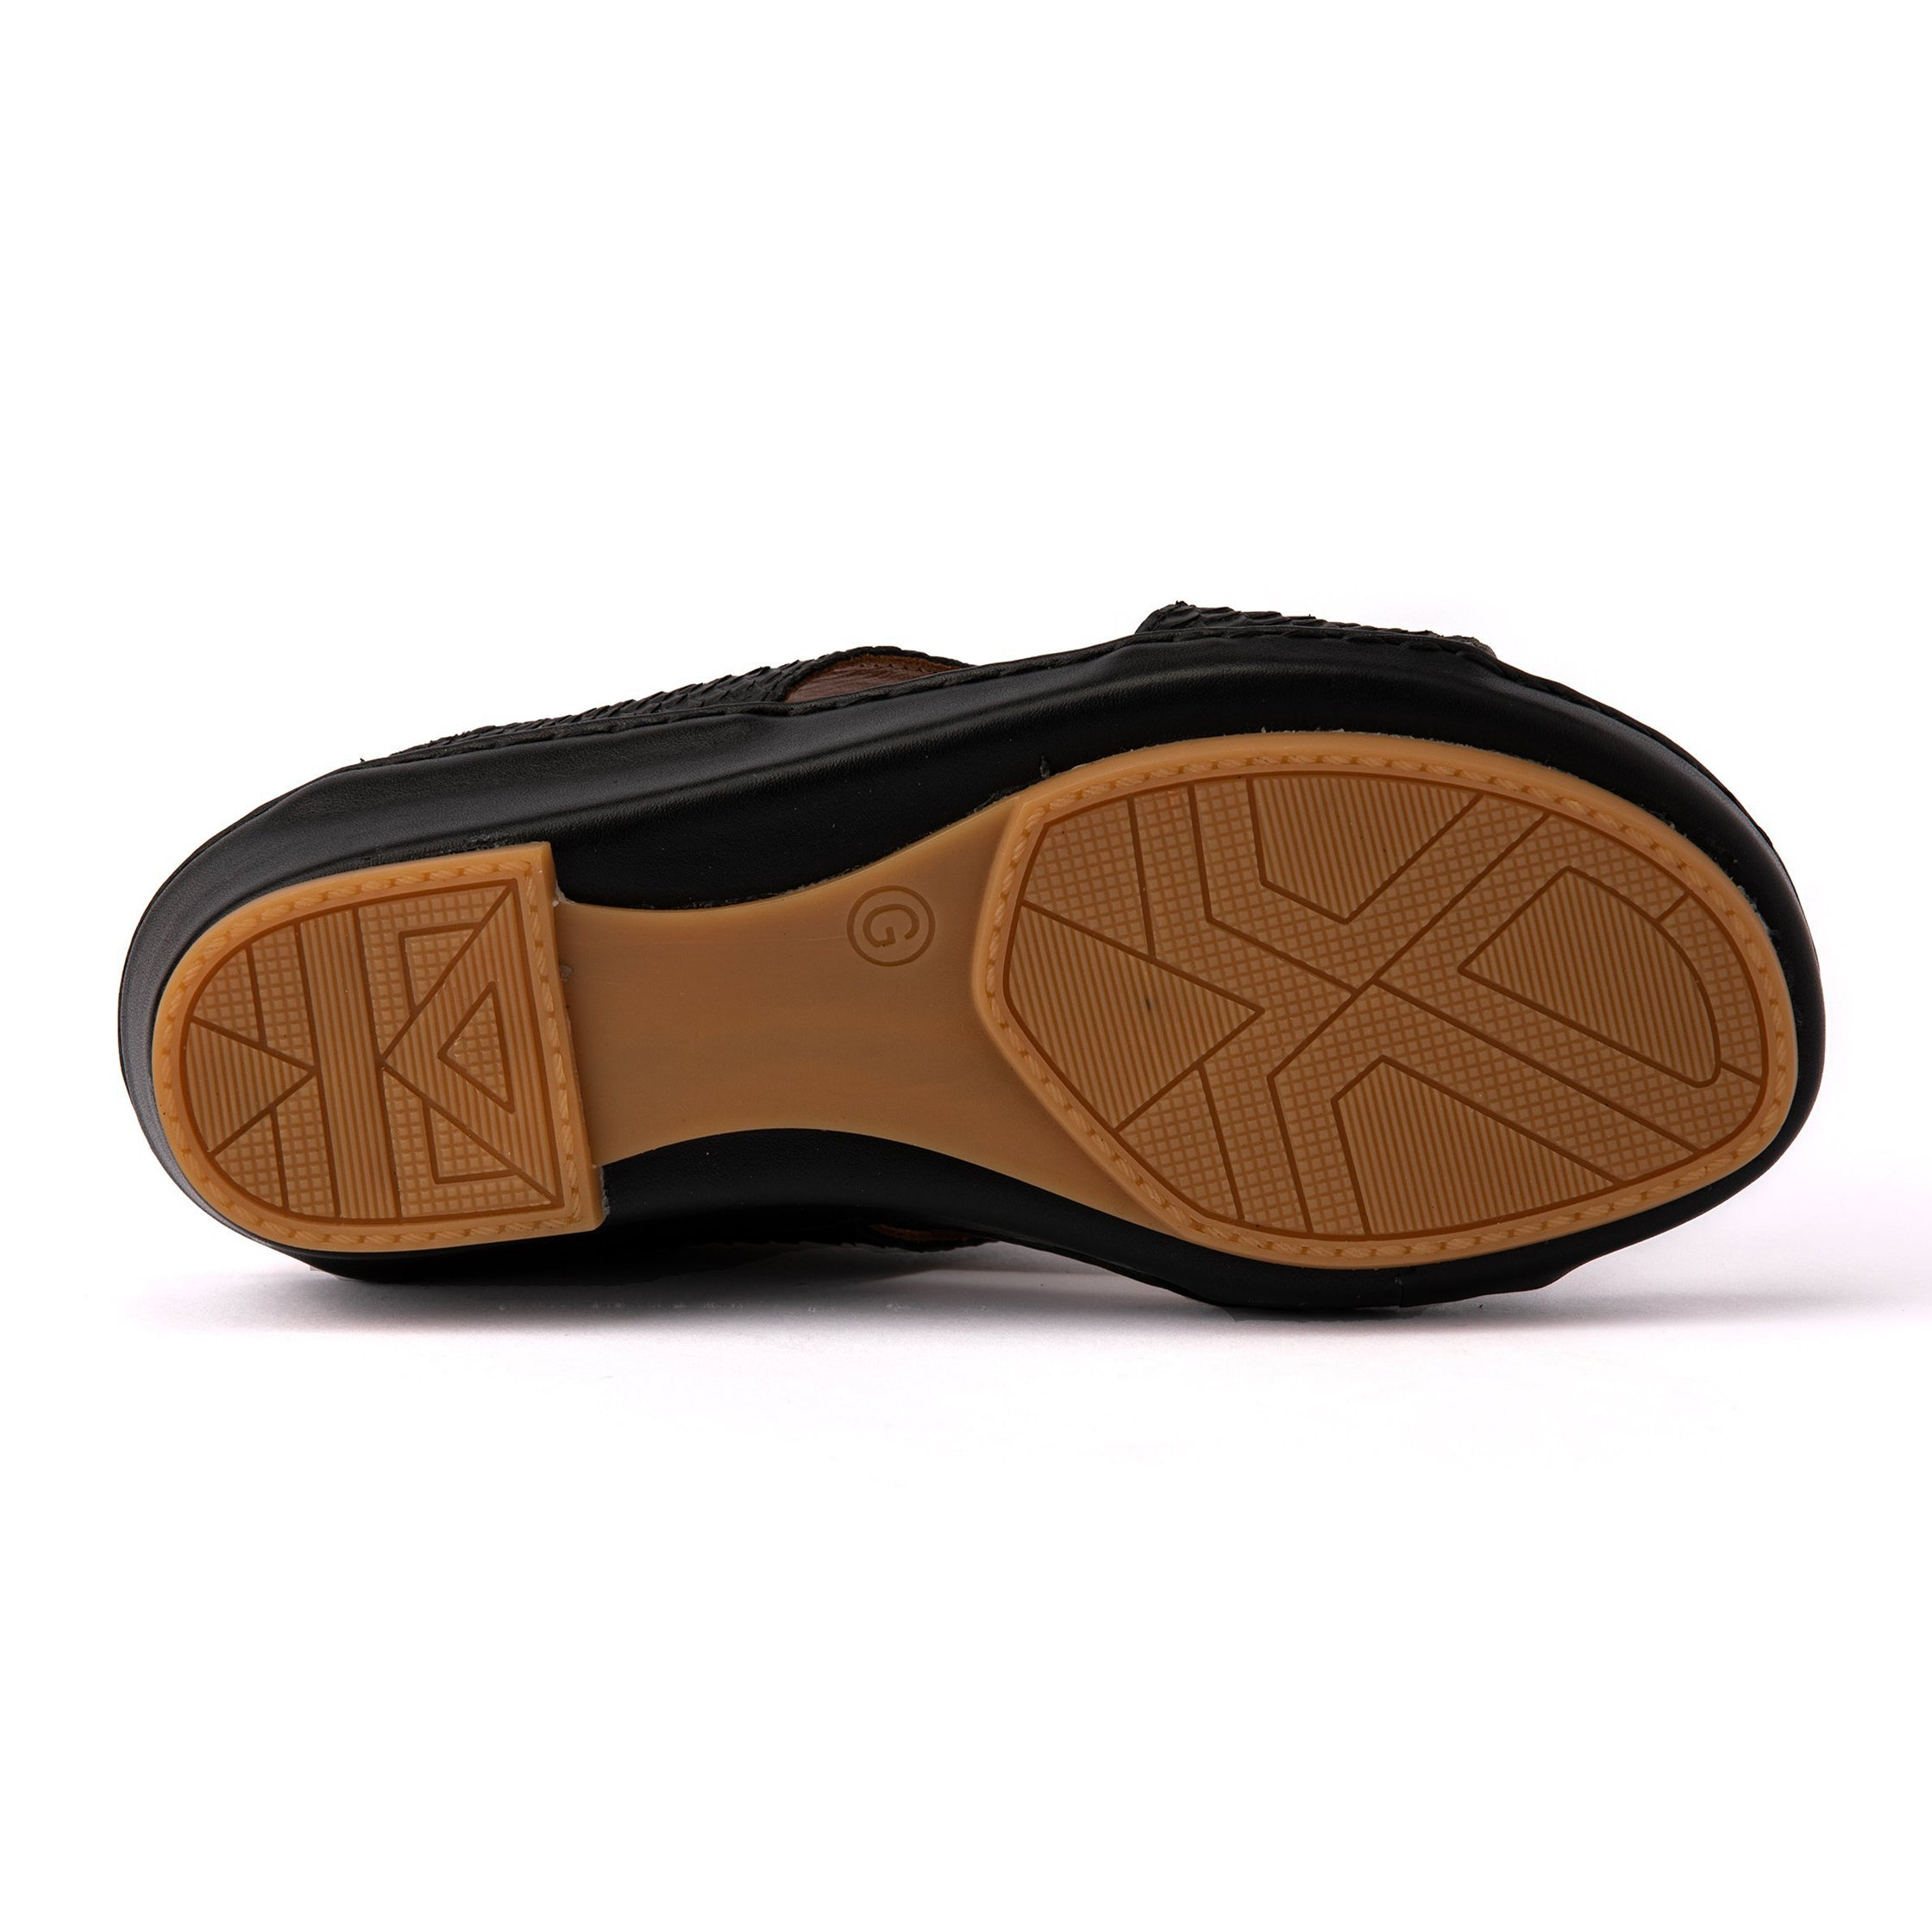 Black F Pitone Boys Arabic Sandals (317-41)